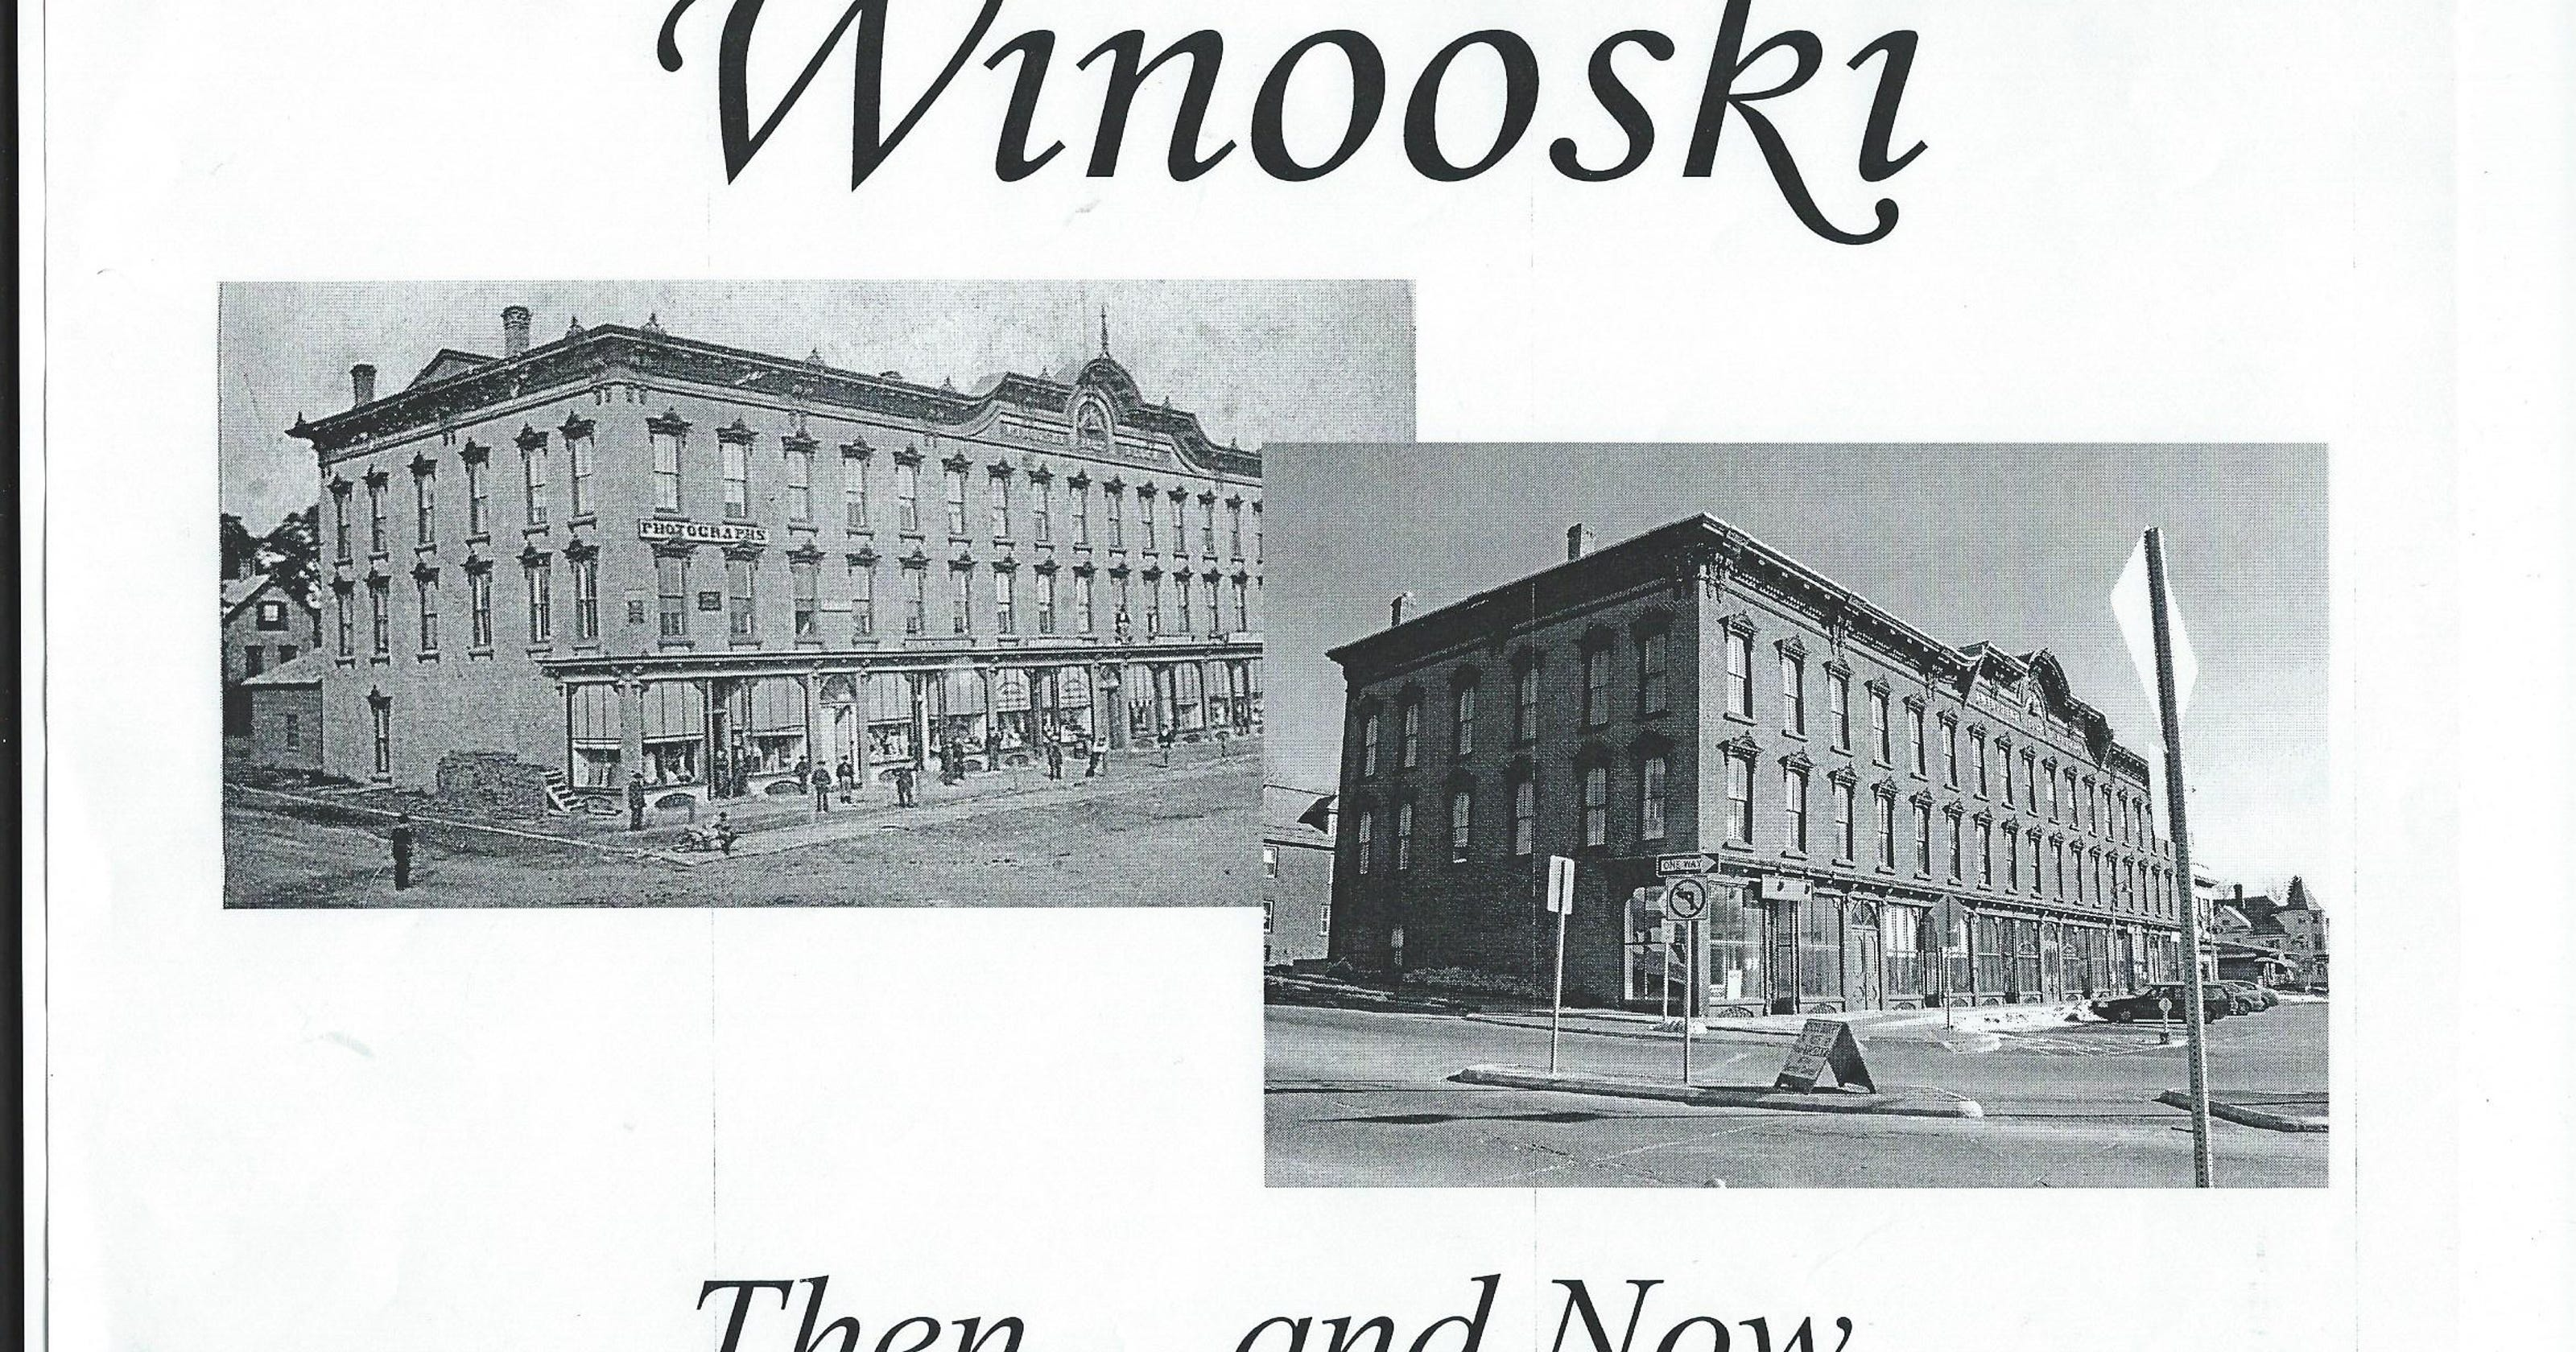 When Winooski became a city